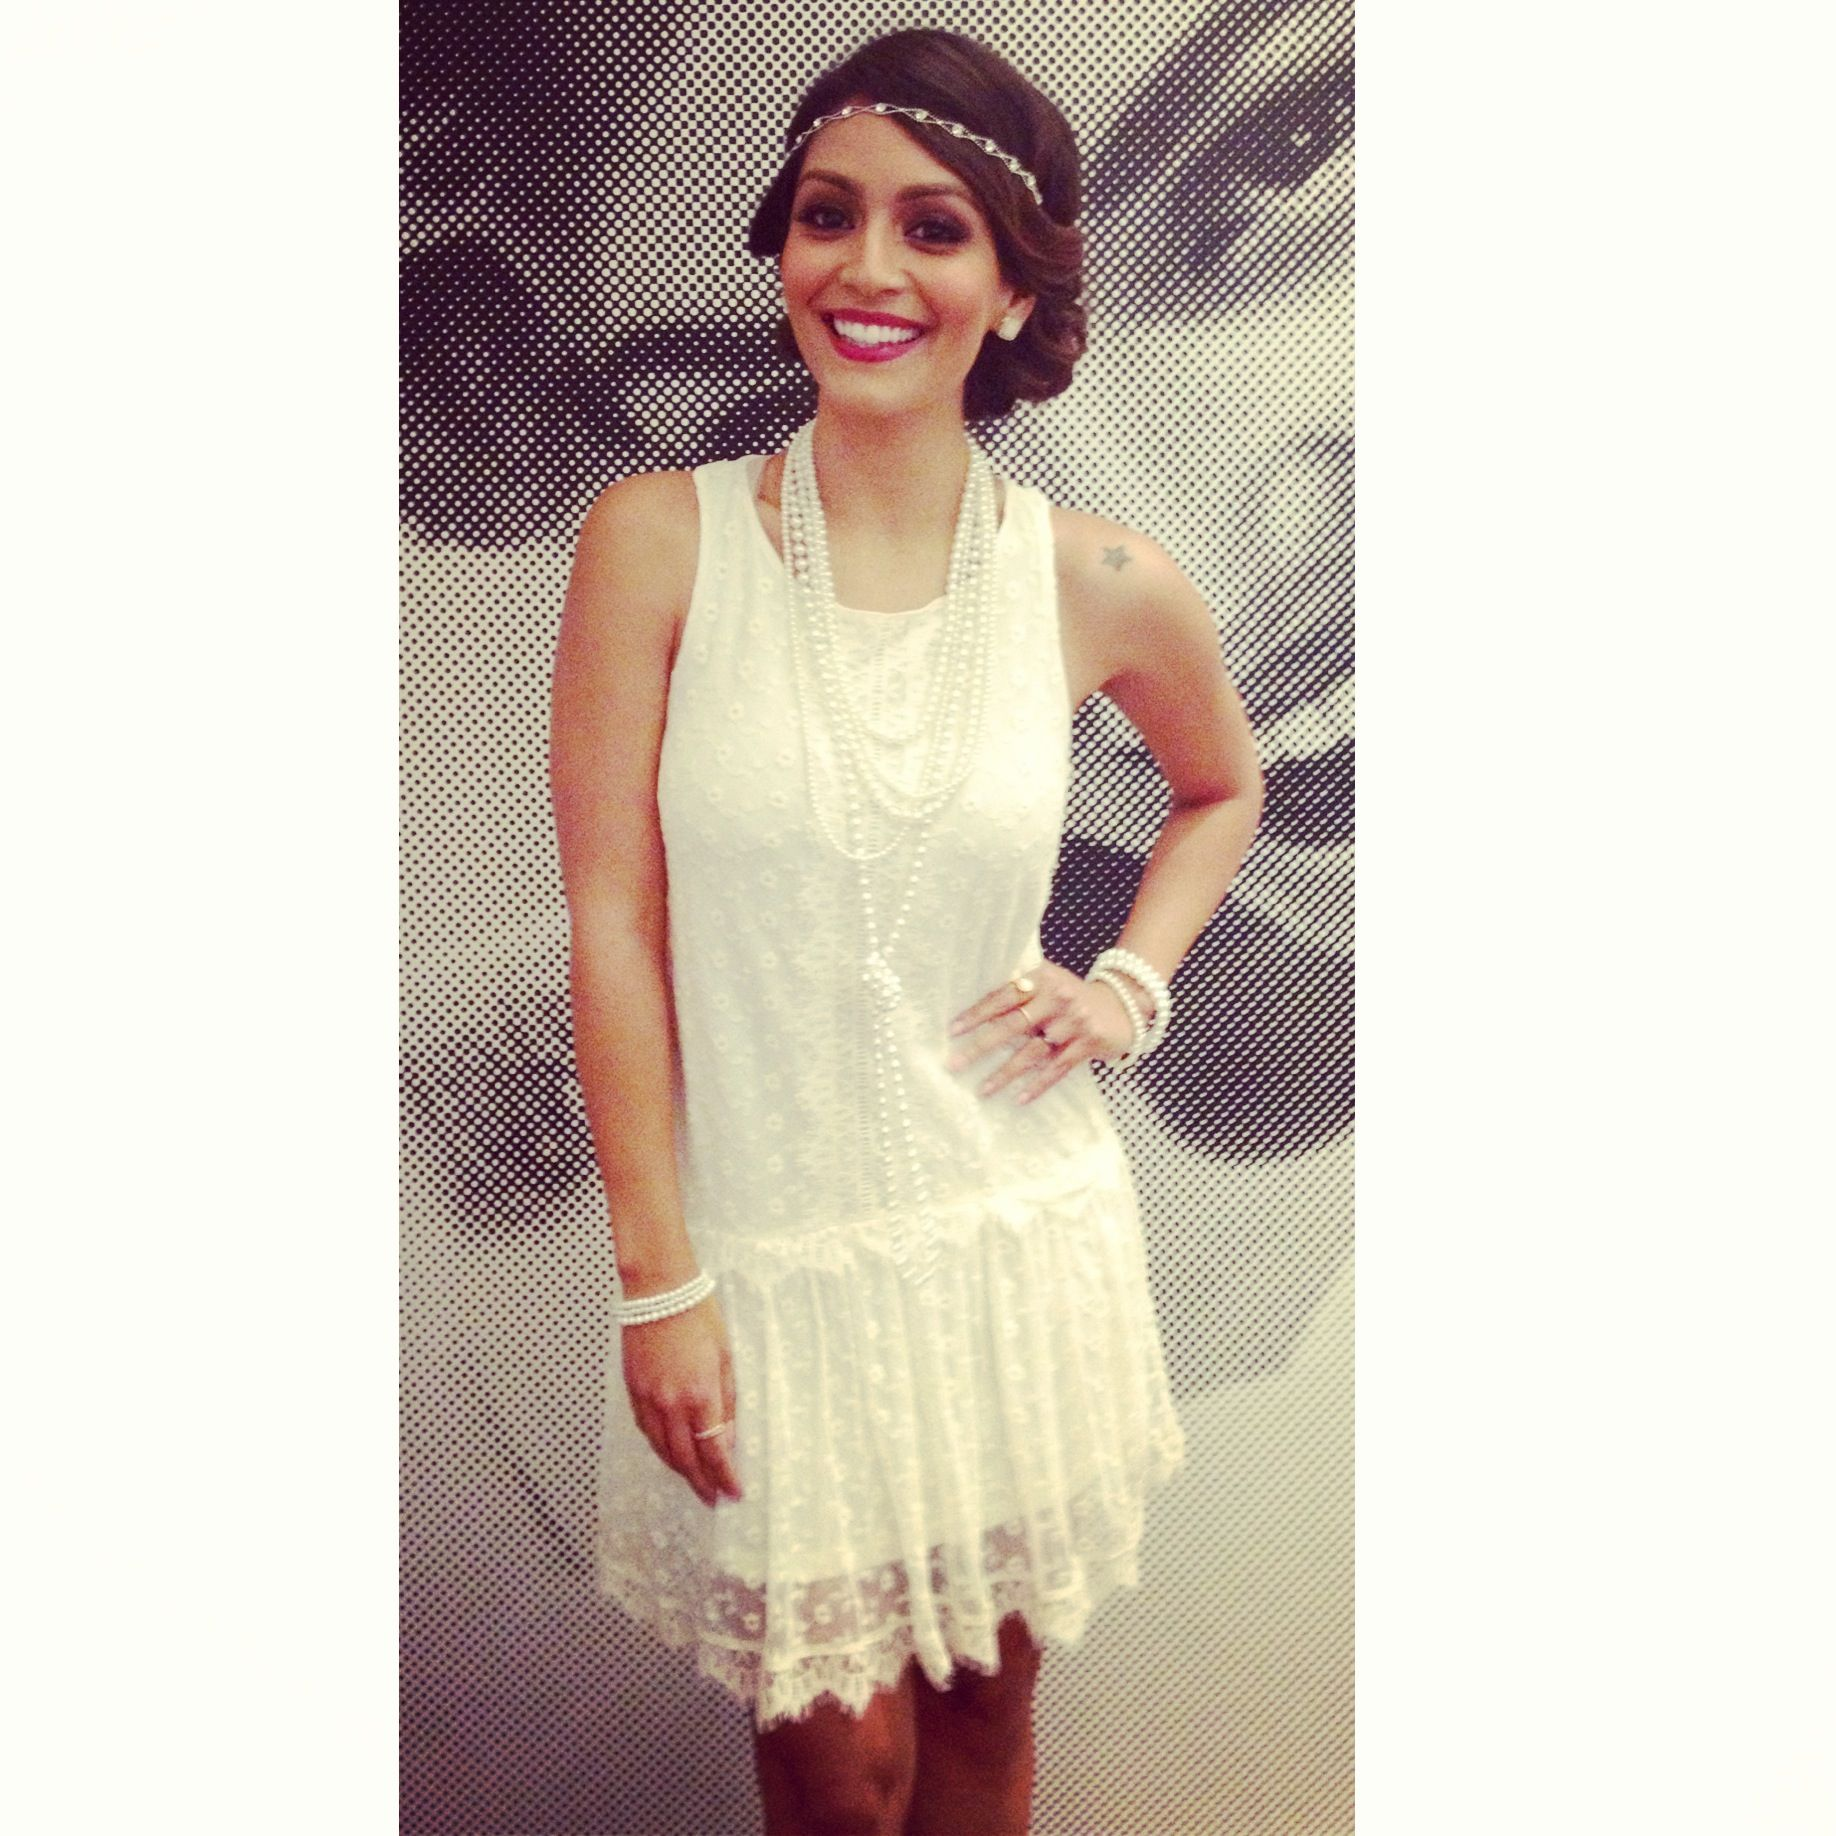 986c356b56 1920 Gatsby Style Theme Party! Dress by  Nordstrom  www.facebook.com vanessaballiOOTD